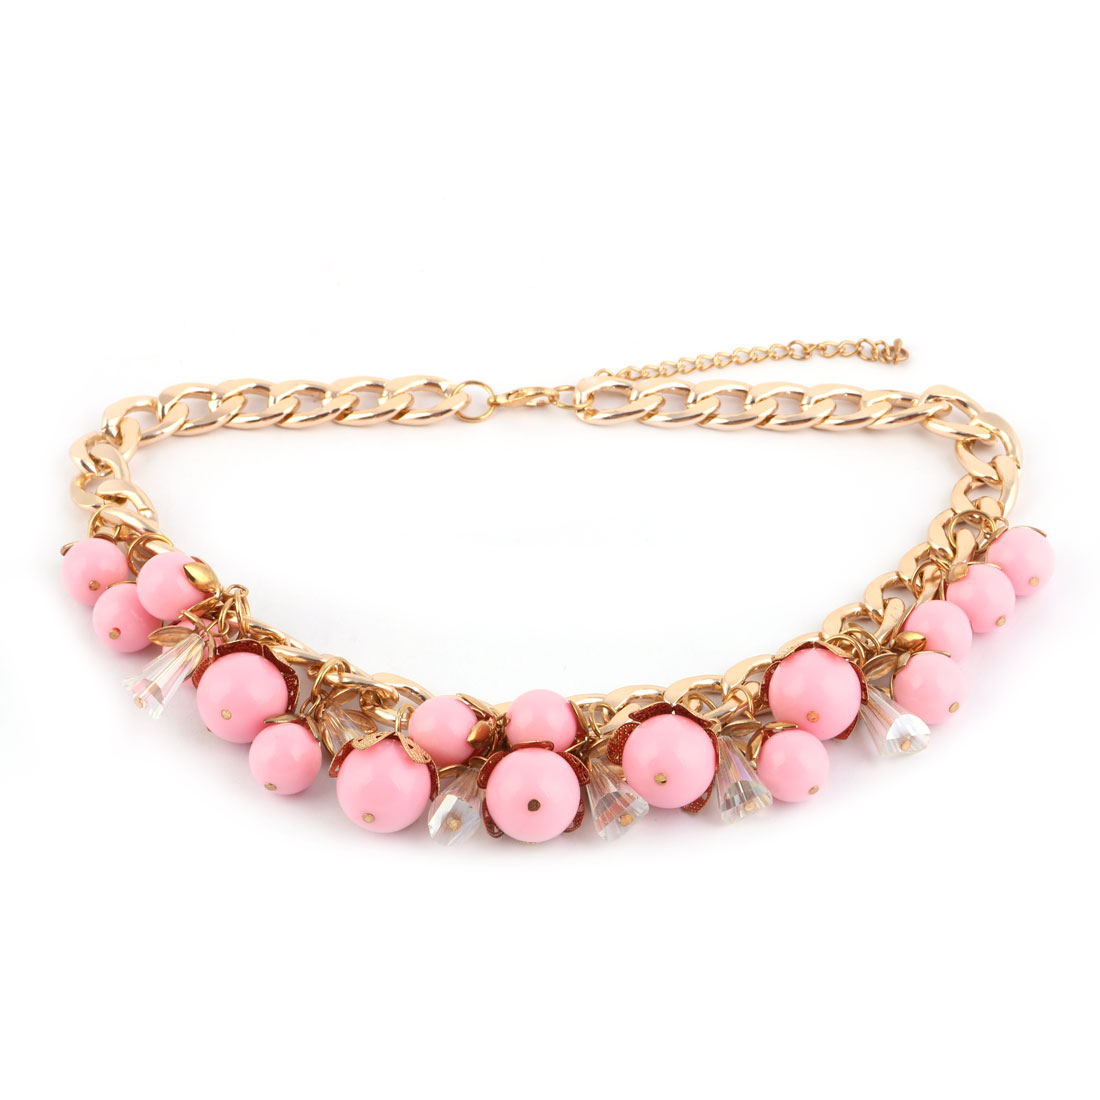 Beads Decor Statement Charm Neck Chain Chunky Necklace Pink Gold Tone